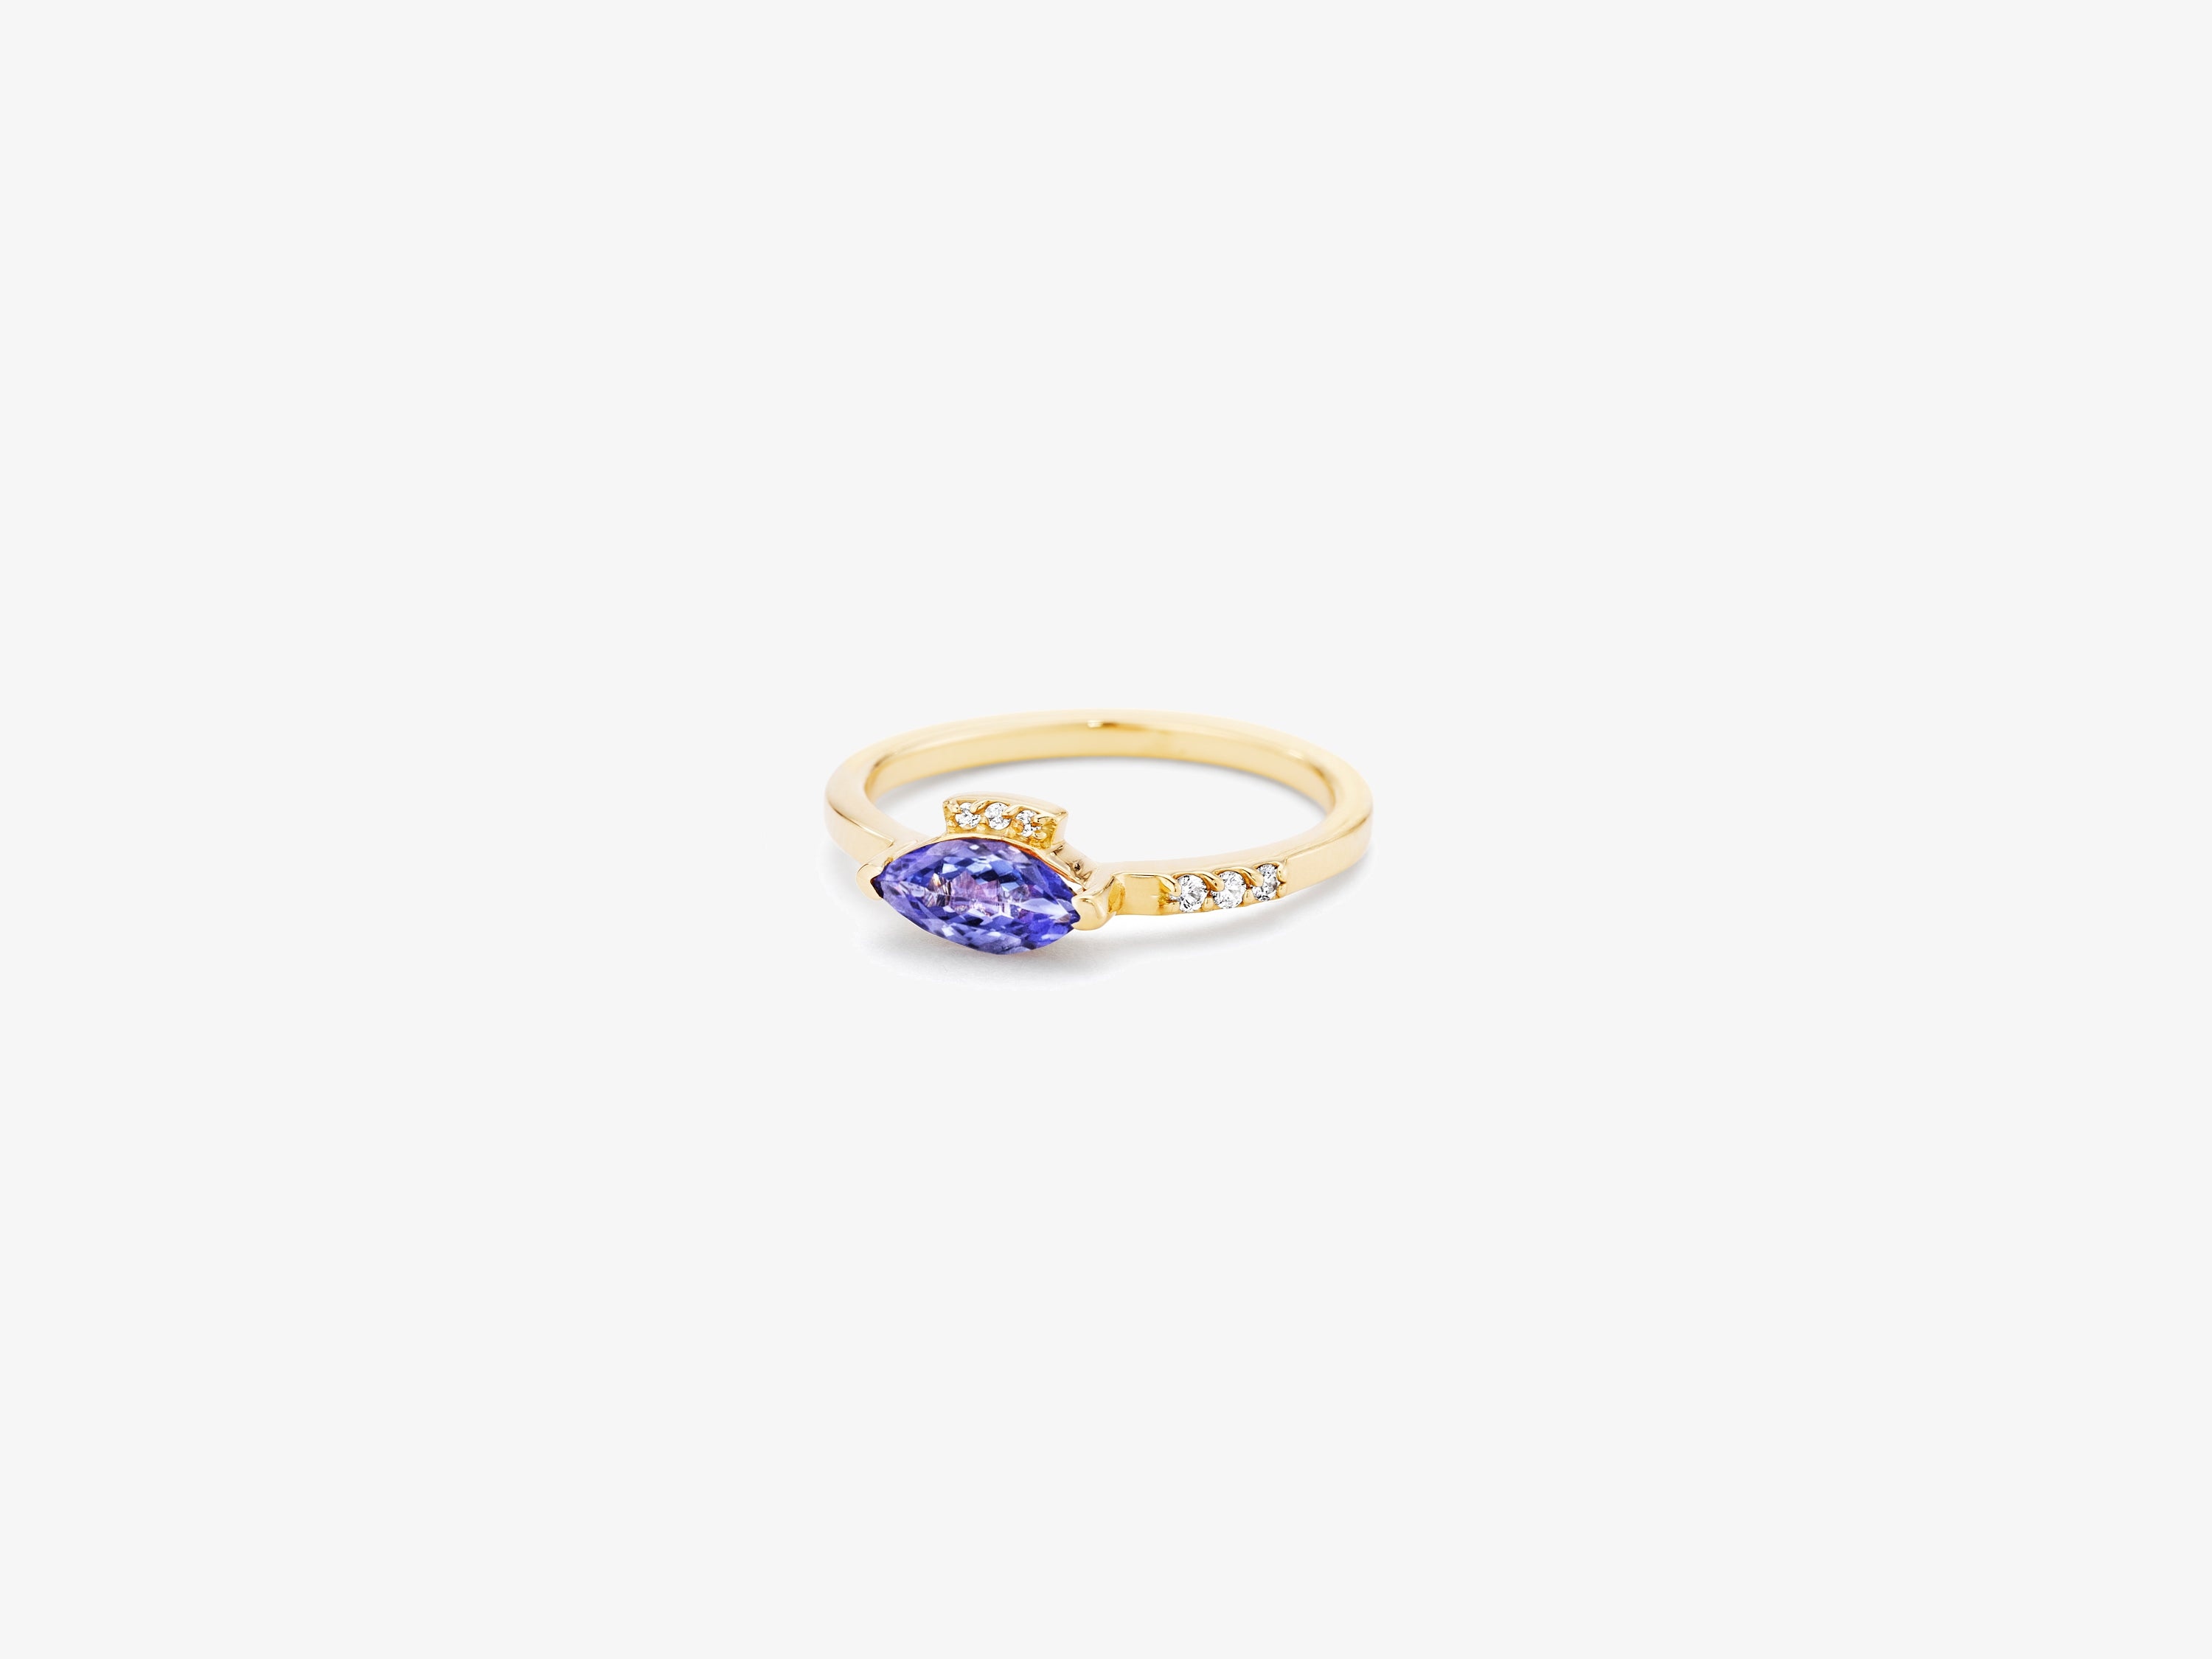 Sprinkle of Diamond Pave Band Ring with Horizontal Marquise Gemstone Detail